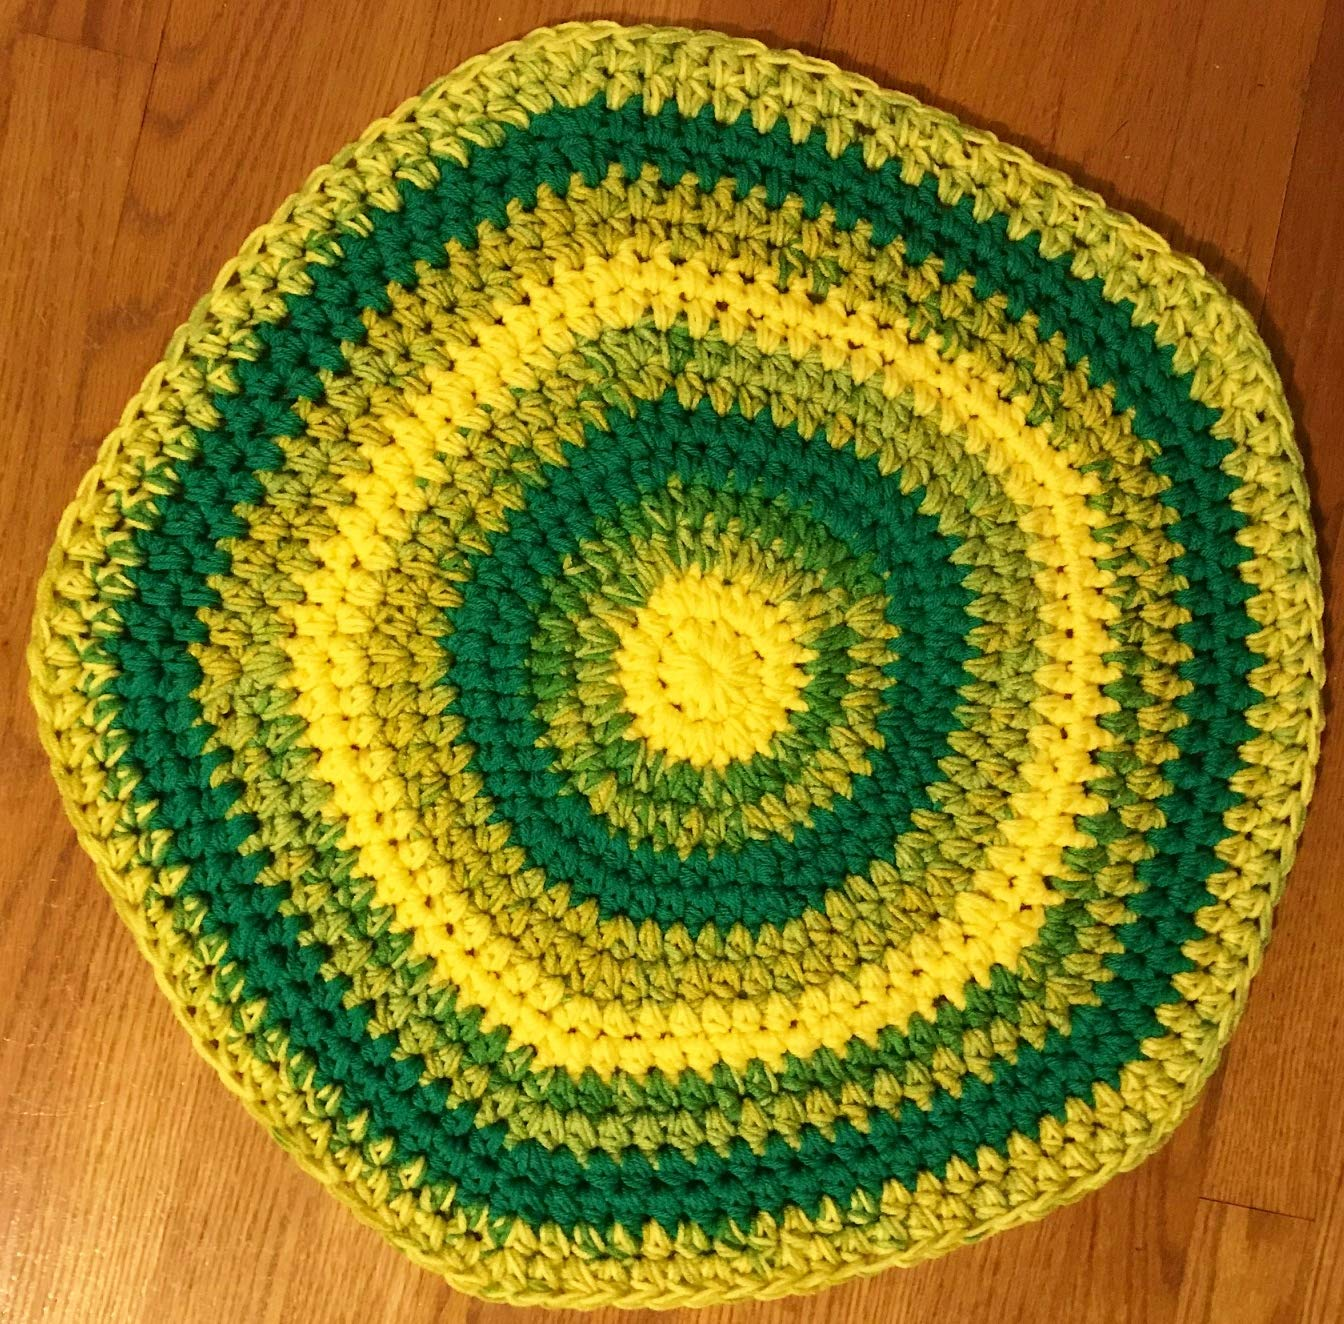 REMNANTS REBORN'Lemon Lime' Pet Blanket - Every purchase ships a box of blankets to an animal shelter!